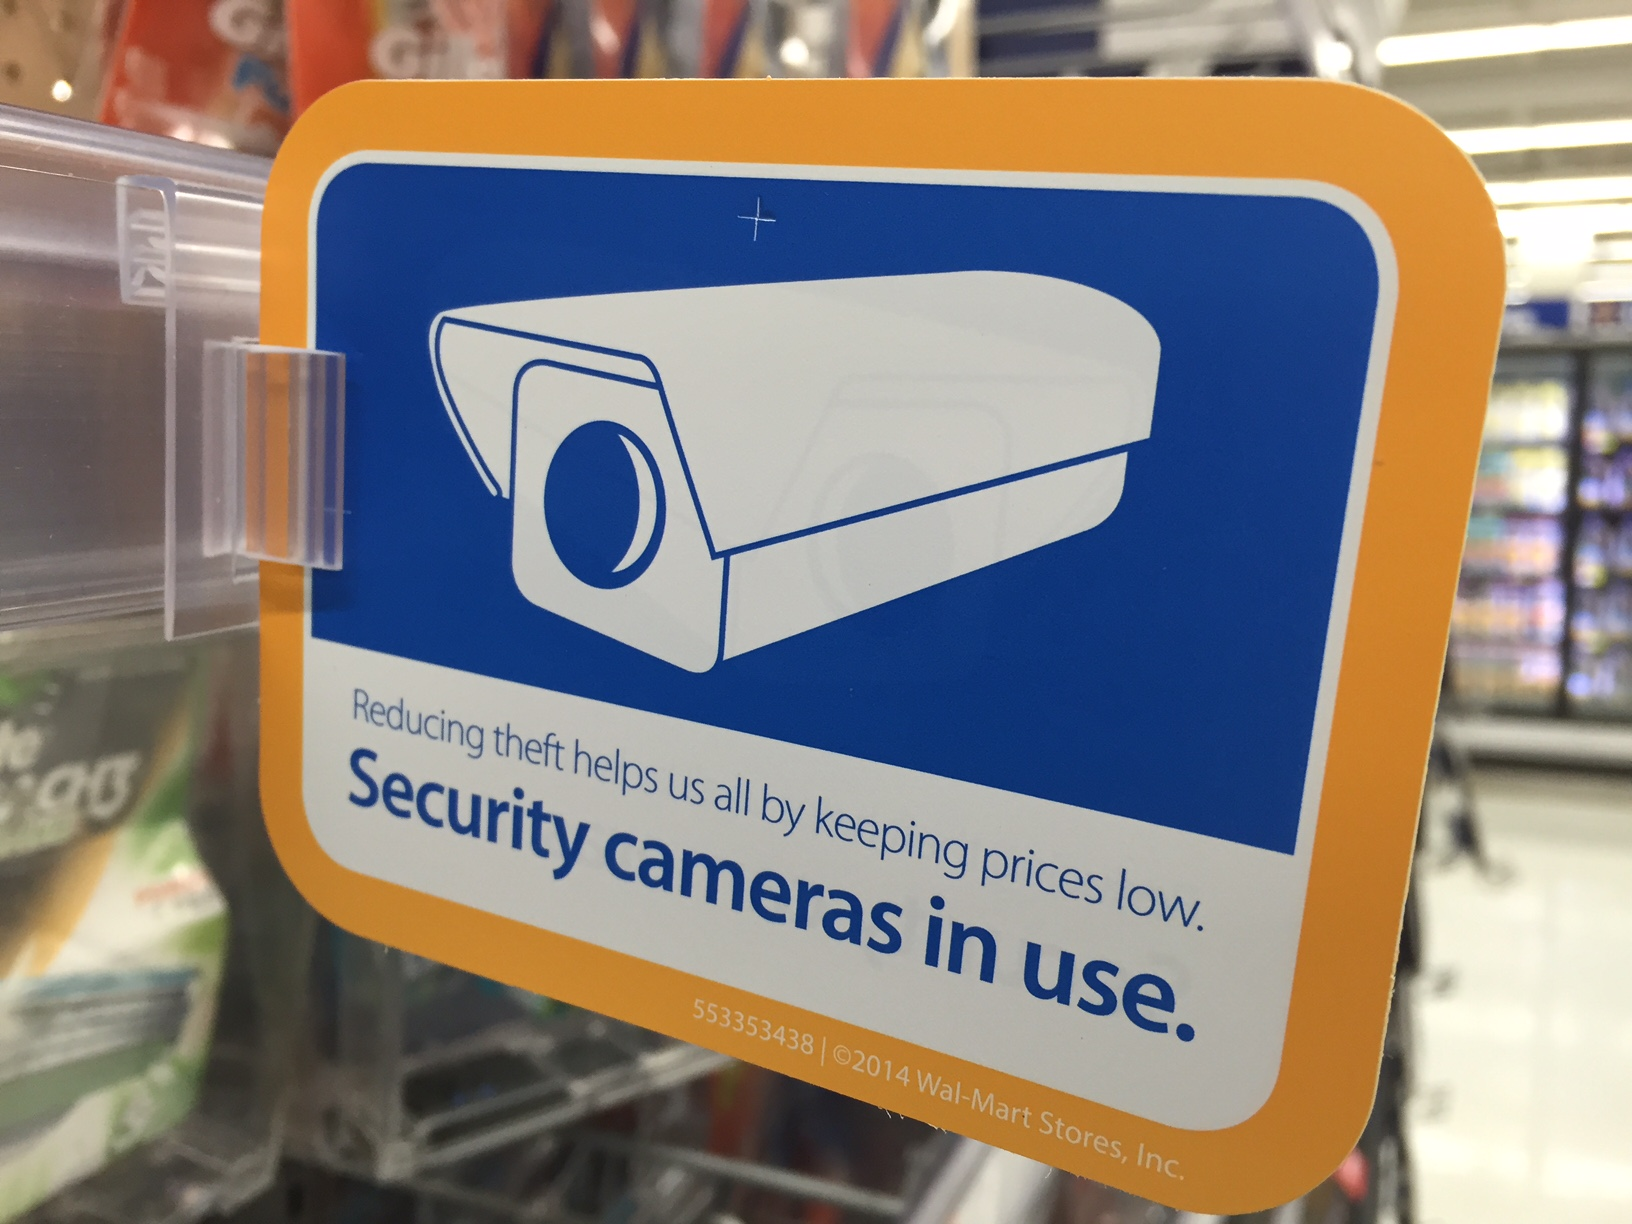 A security camera sign depicting risk n the retail environment